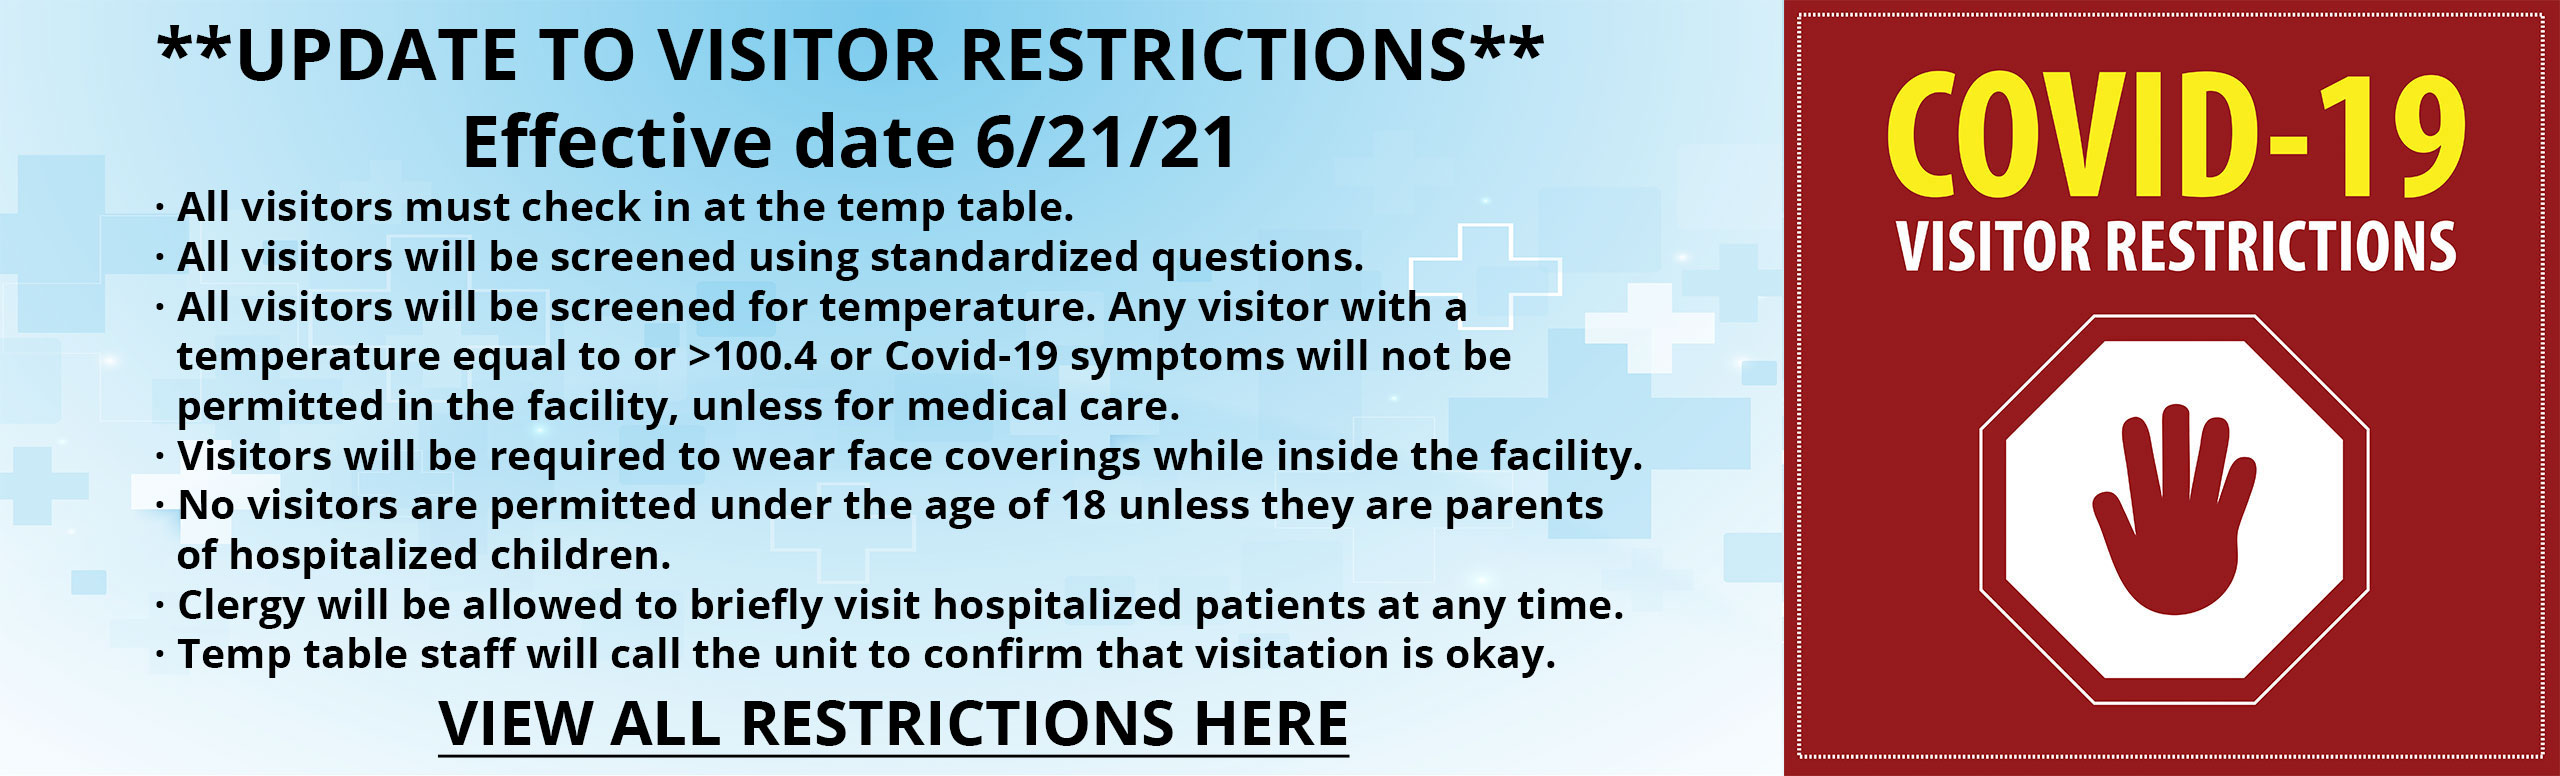 **UPDATE TO VISITOR RESTRICTIONS**  Due to Otero County slipping back to Level Yellow, this prompts us to make some additional changes. Effective 4/24/21, we will restrict visitation to prevent additional traffic in the hospital.  All inpatient units, Emergency Department, and Surgical Services will no longer allow a visitor. Two parents or guardians will be allowed with pediatric patients ages 0 to 17 in the Emergency Department and inpatient hospital units.  OB patients will continue to be allowed one support person only who will remain in the room for the duration of the stay. Visitation restrictions will be re-evaluated based upon the county level. All other previous restrictions and guidelines will remain in place.